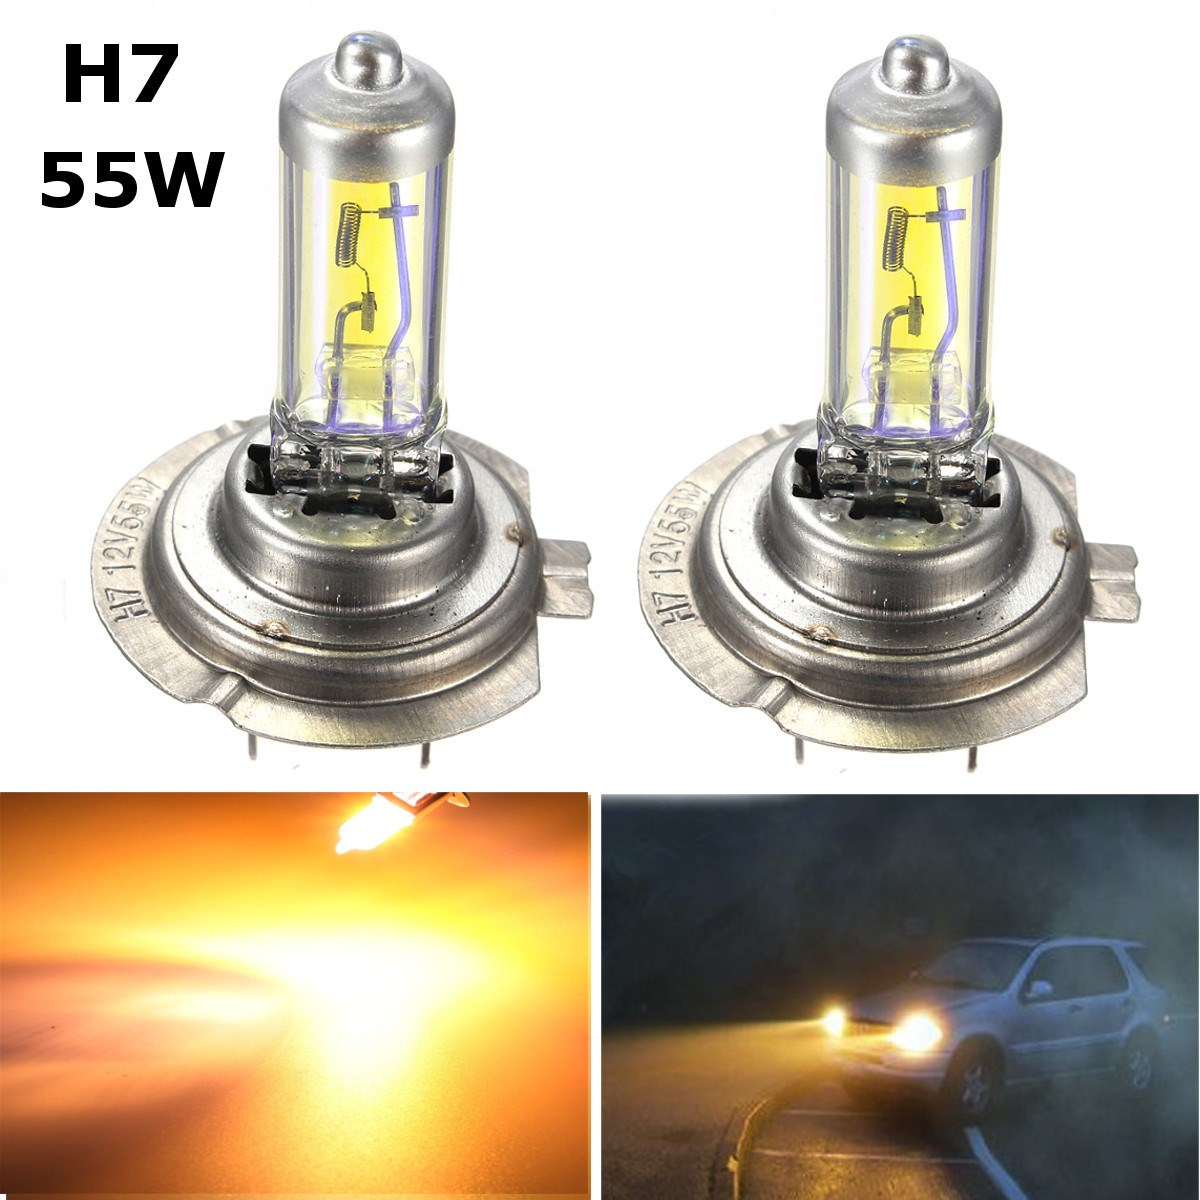 Magnifiek H1 H3 H4 H7 55 w Geel LED Auto Licht Halogeen Lamp Auto Styling WA92